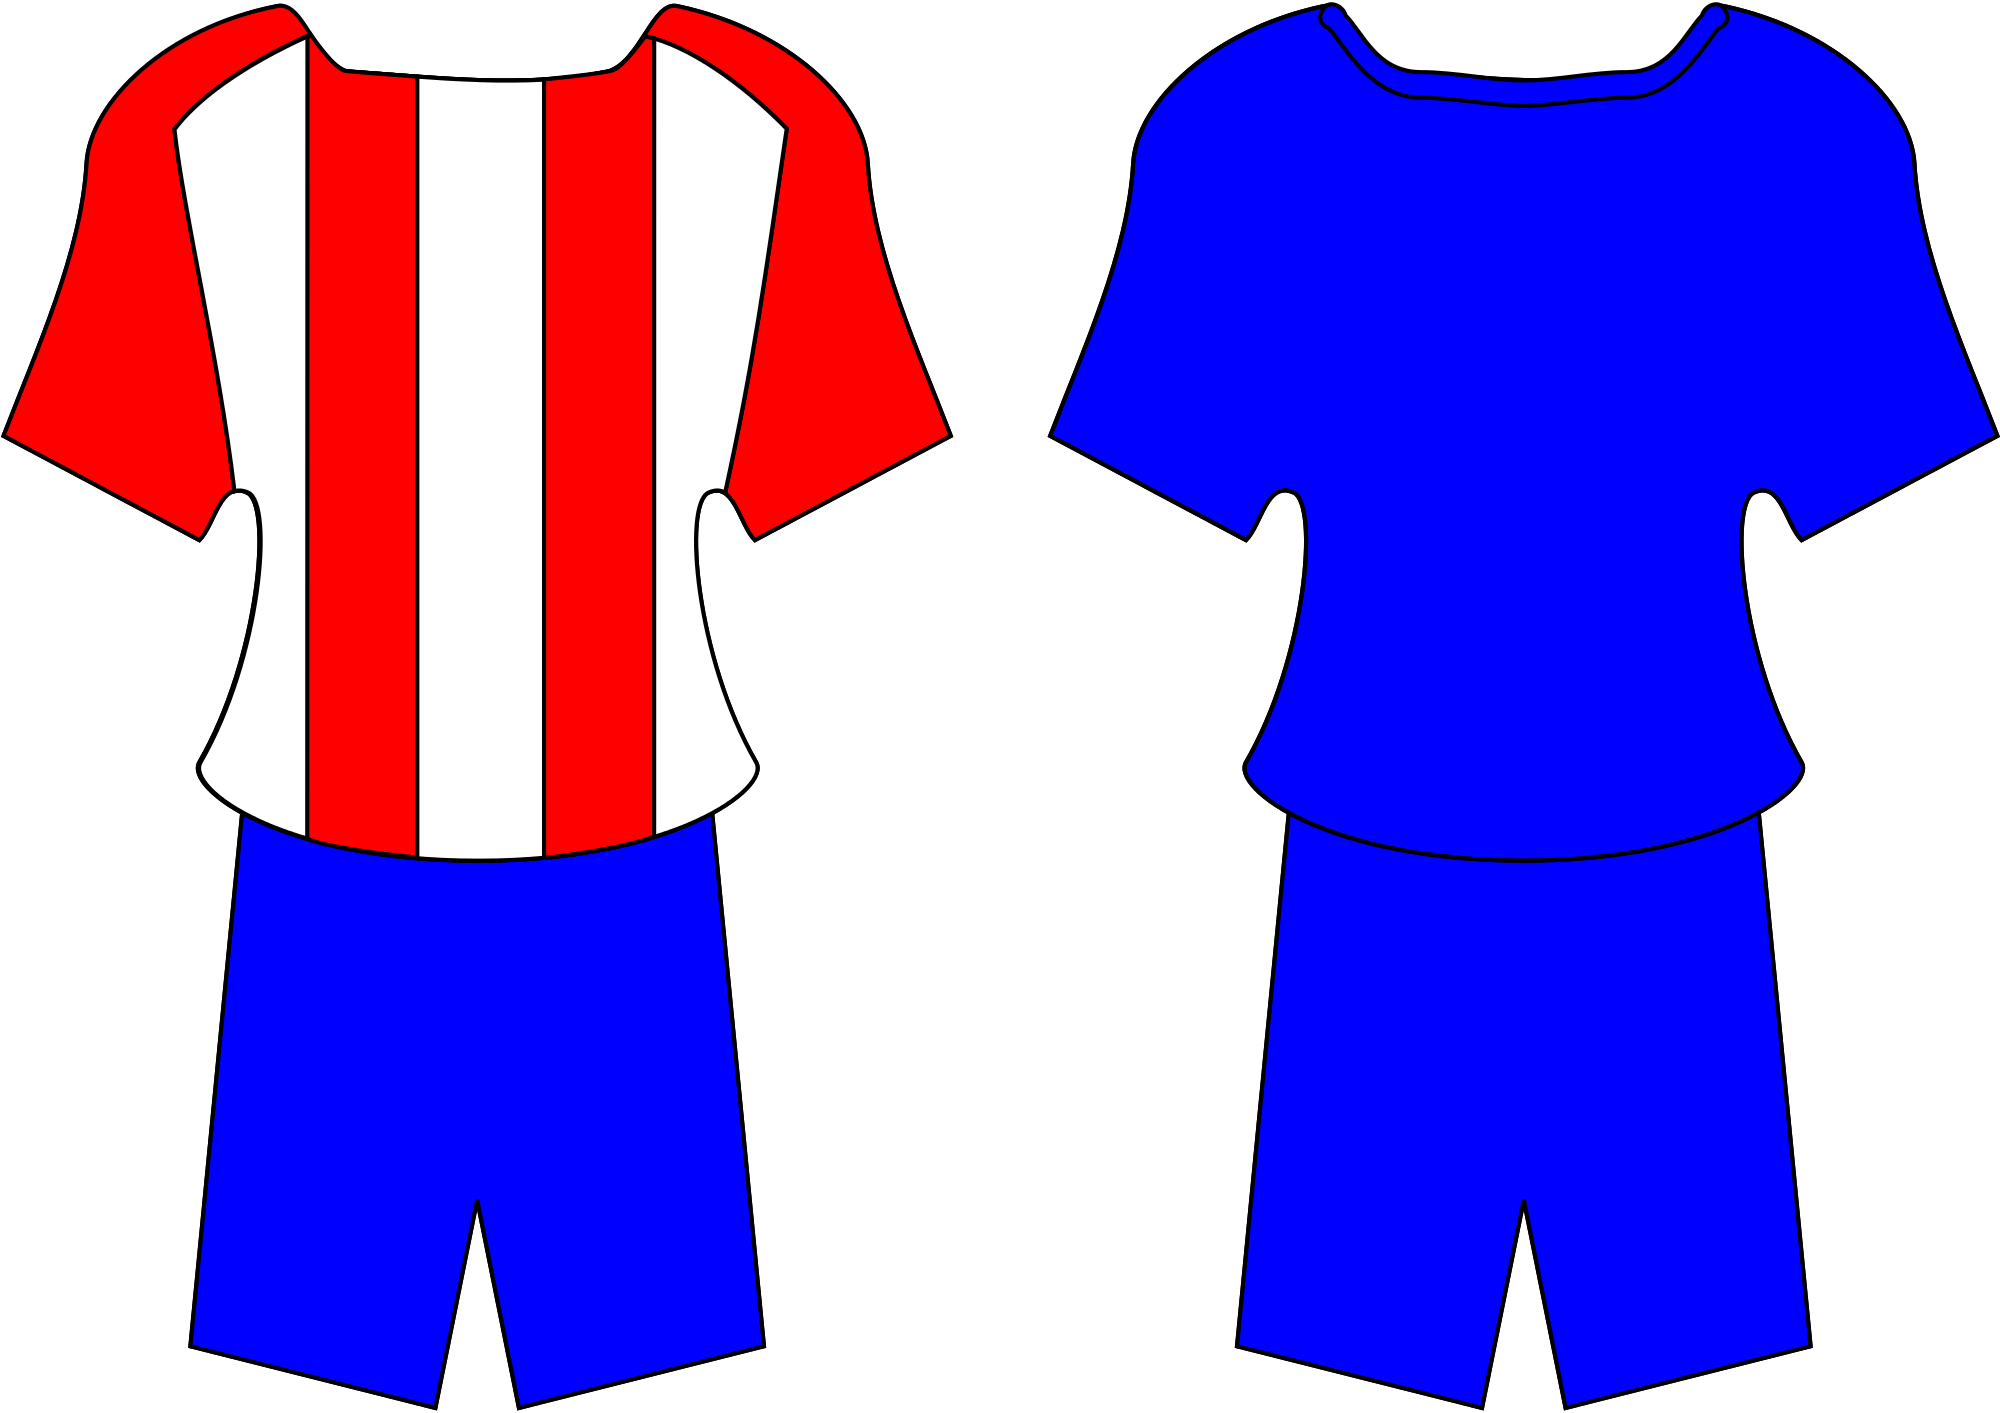 Football jersey clipart png vector stock File:PRY football kit.svg - Wikimedia Commons vector stock